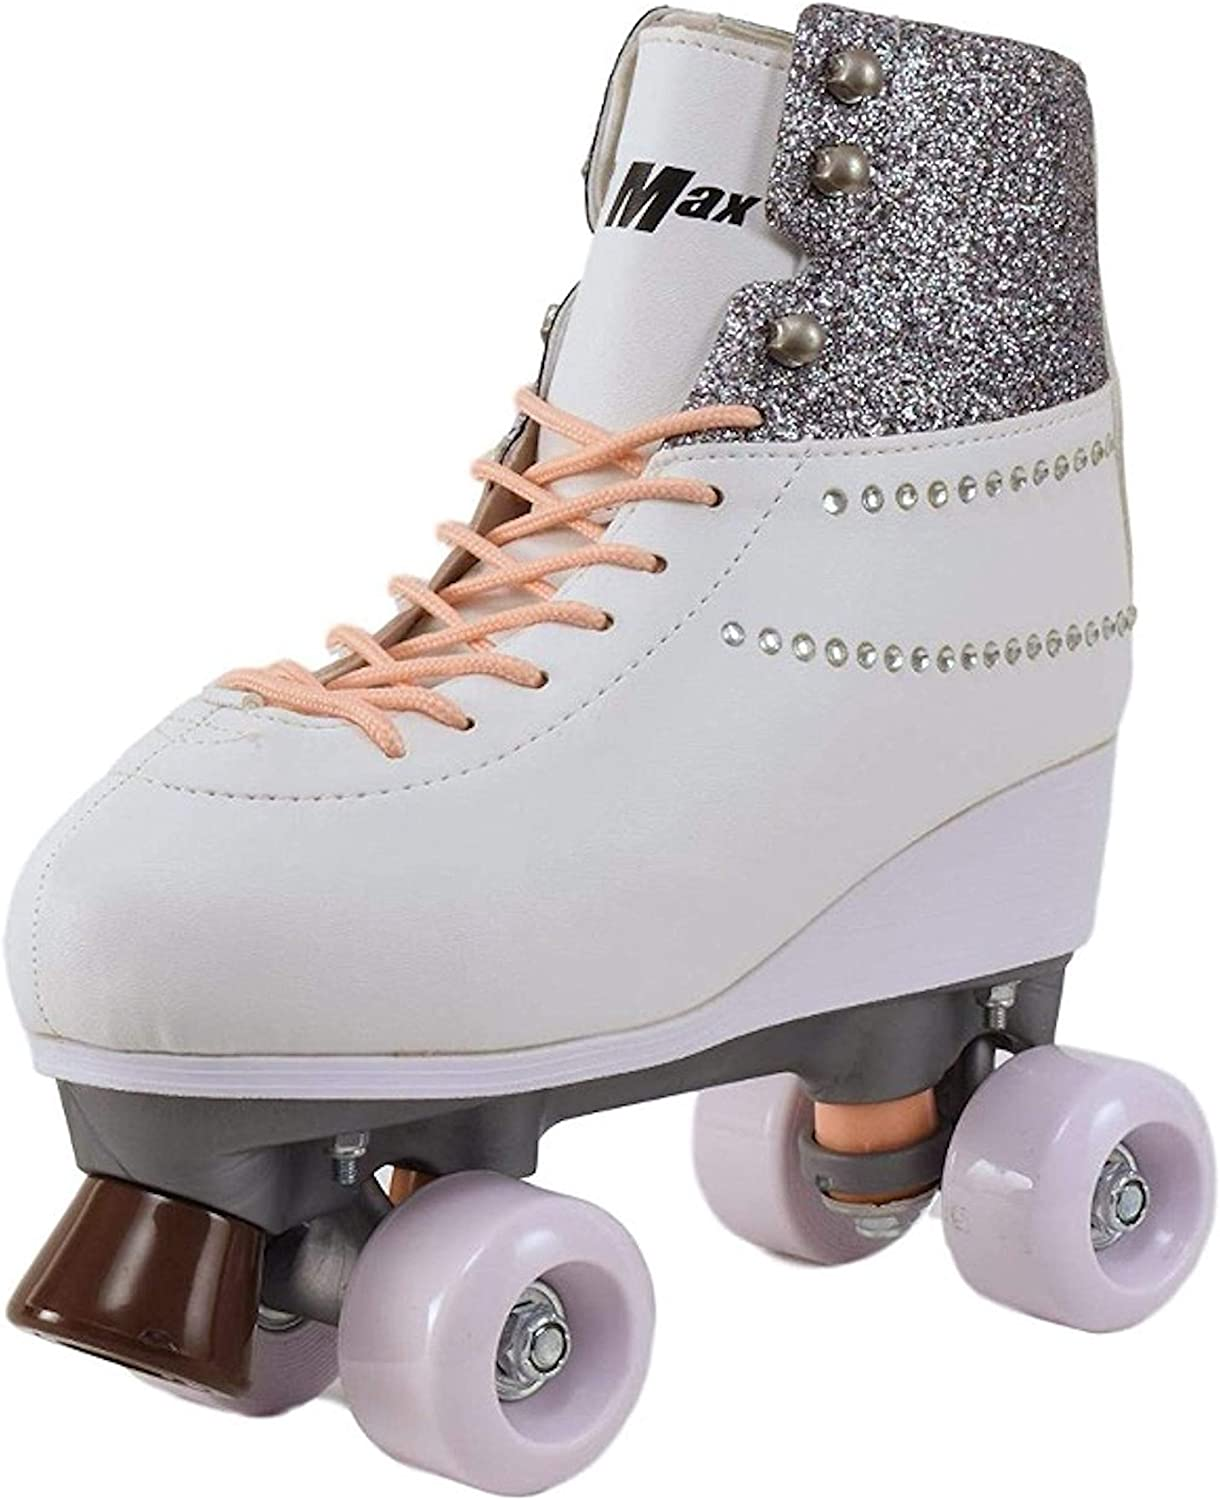 Roller Skates for Girls Size 3 White Purple for Kids Quad Derby Light with Adjustable Lace System Outdoor rollerskates Girl 4-Wheels Blades Indoor Classic Youth Toddler ABEC-7 34